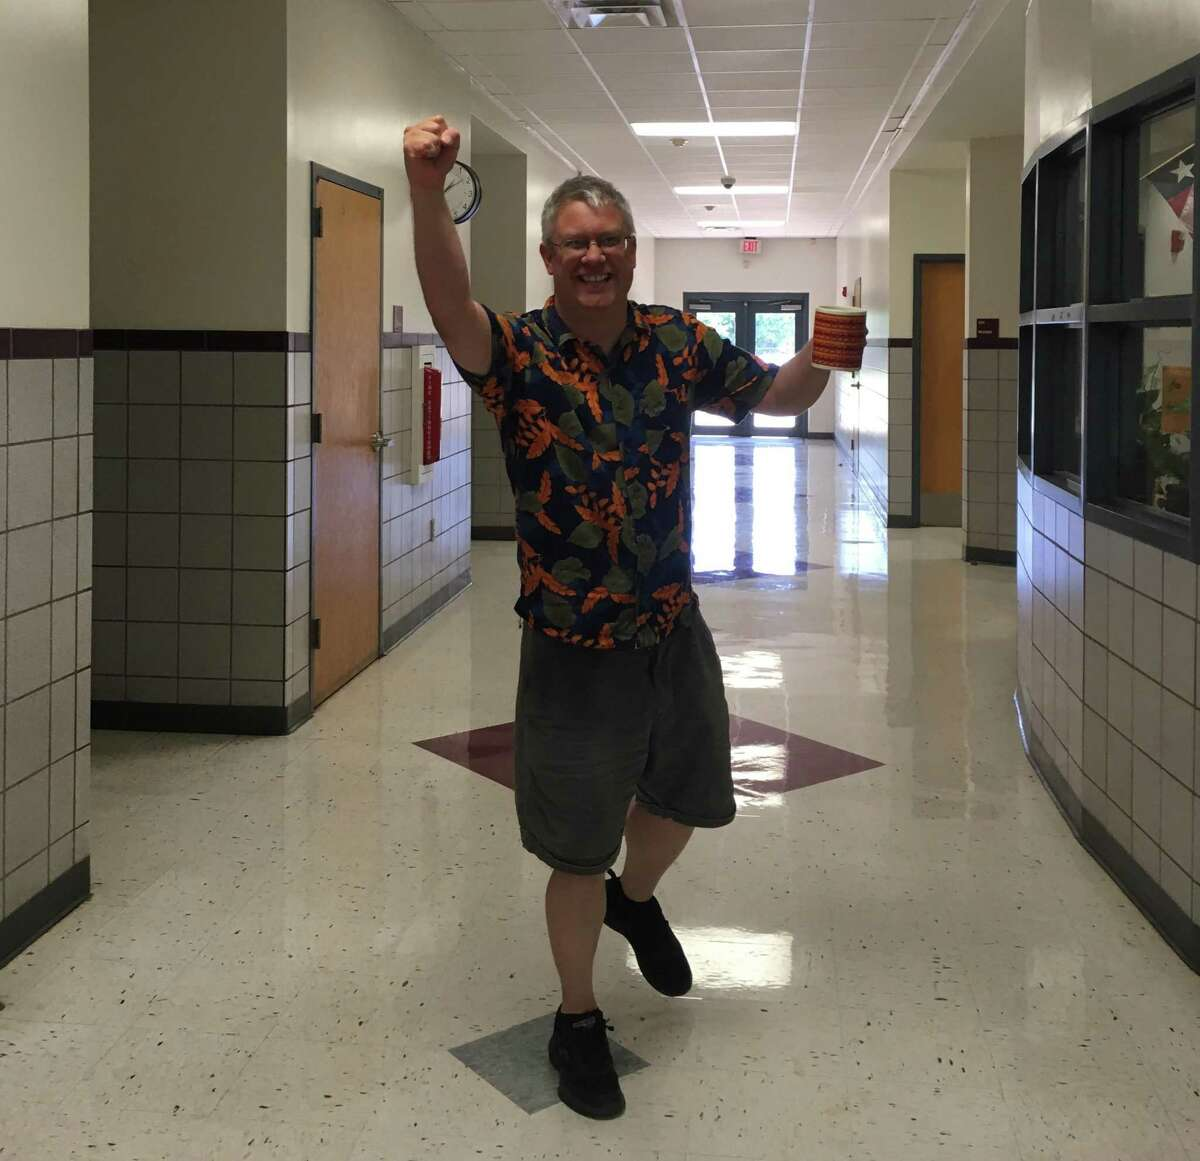 """Technology teacher, William Davis demonstrates his """"We got this"""" attitude in a hallway at Rhodes Middle School. Davis died Tuesday in a car accident while traveling in Uganda."""